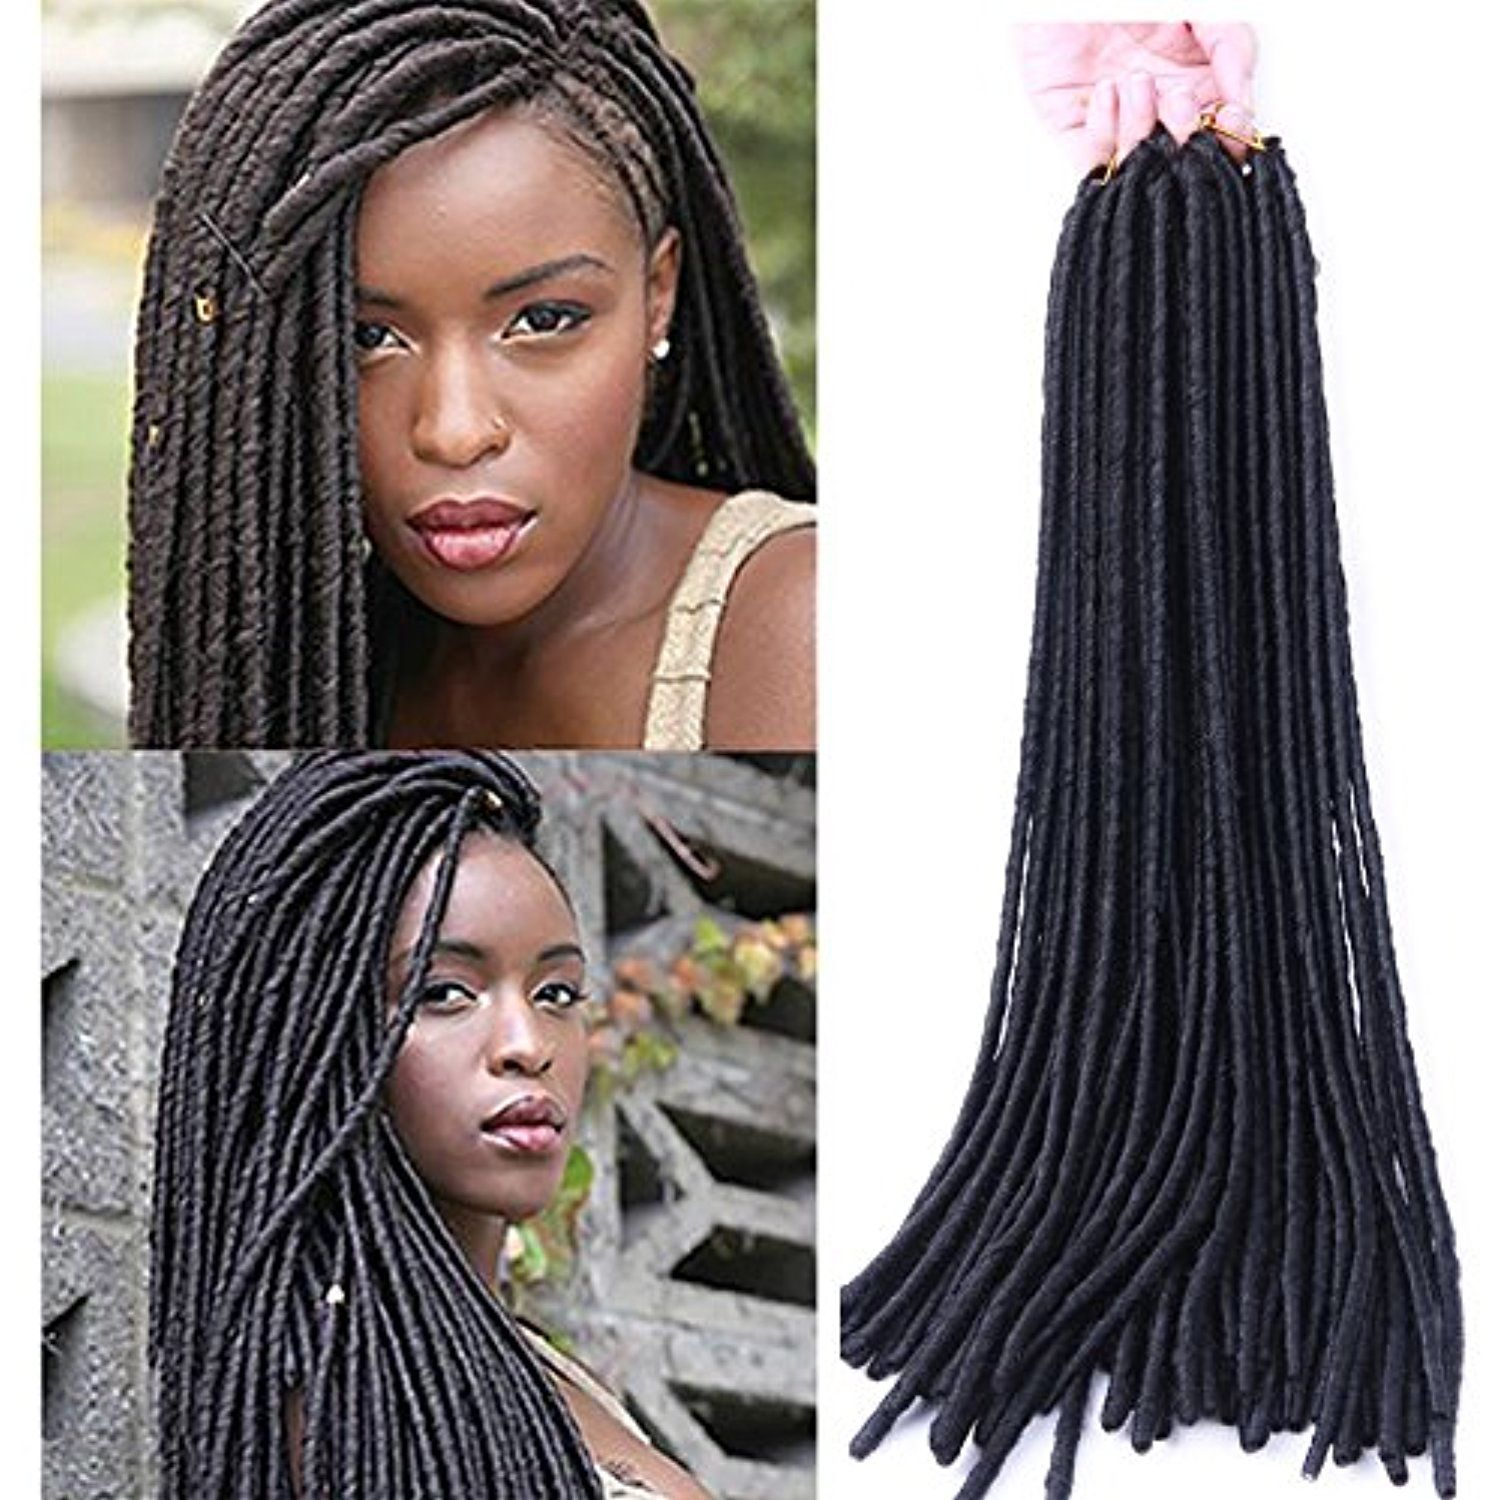 Lady Miranda Faux Locs Twist Crochet Braids Hair 20 Inches Loop Micro Ring Extensions Synethetic Dreadlocks For Black Africa Women Black3 Check